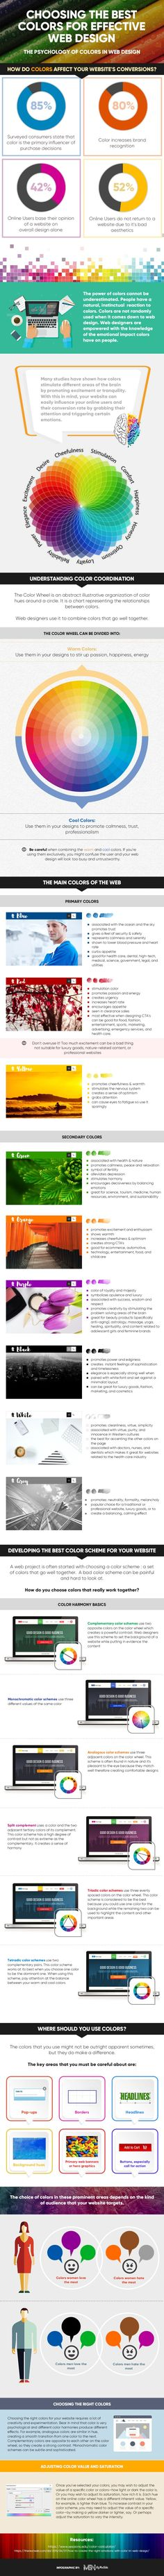 Improve Your Conversions By Using The Psychology of Color